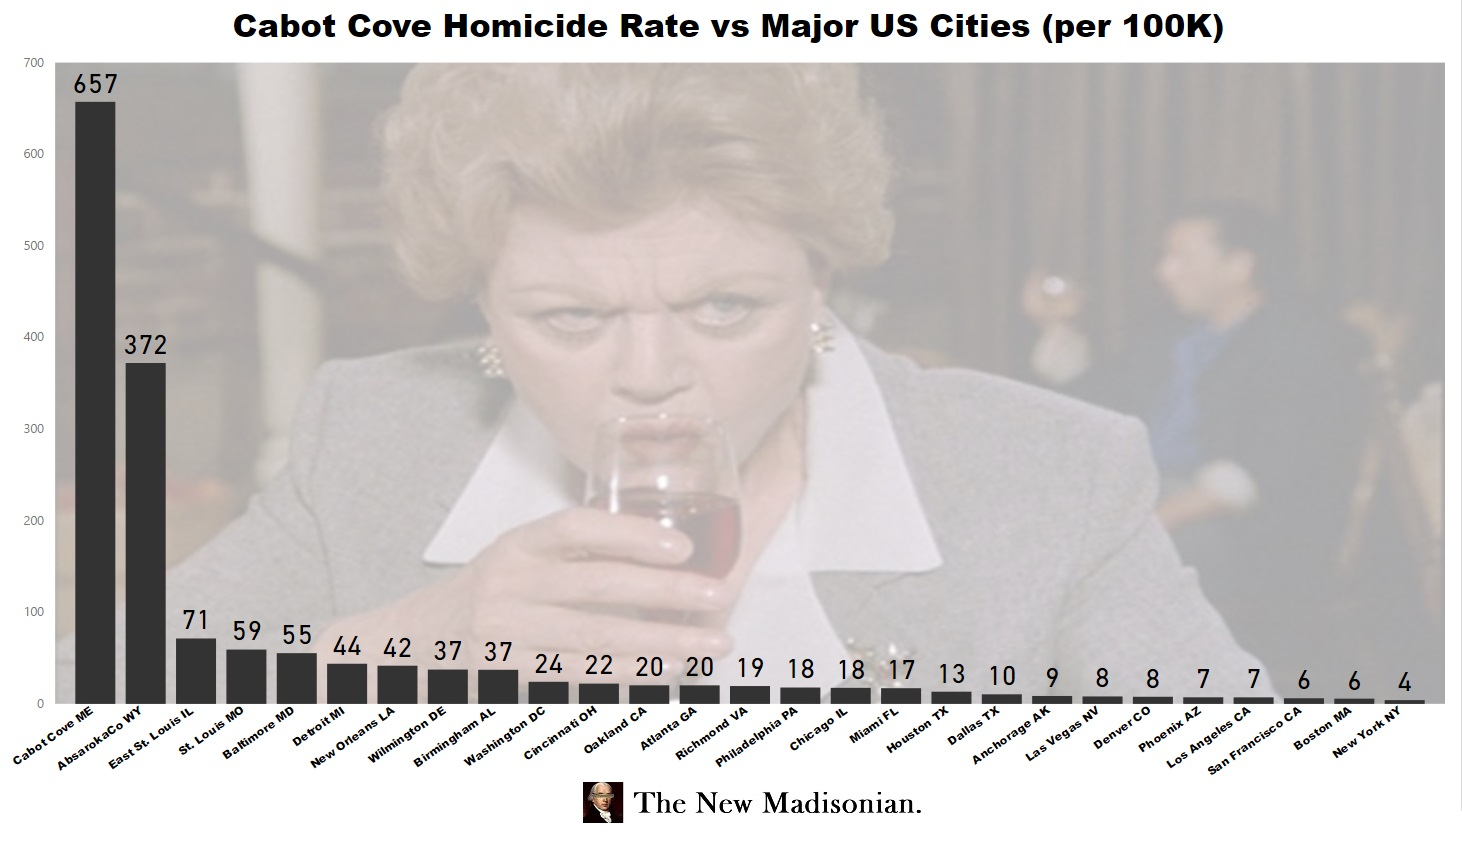 4b663179986 ... homicide rate is a sky-high 657 per 100K citizens. So Cabot Cove  actually manages to beat out even the extremely violent Absaroka County.